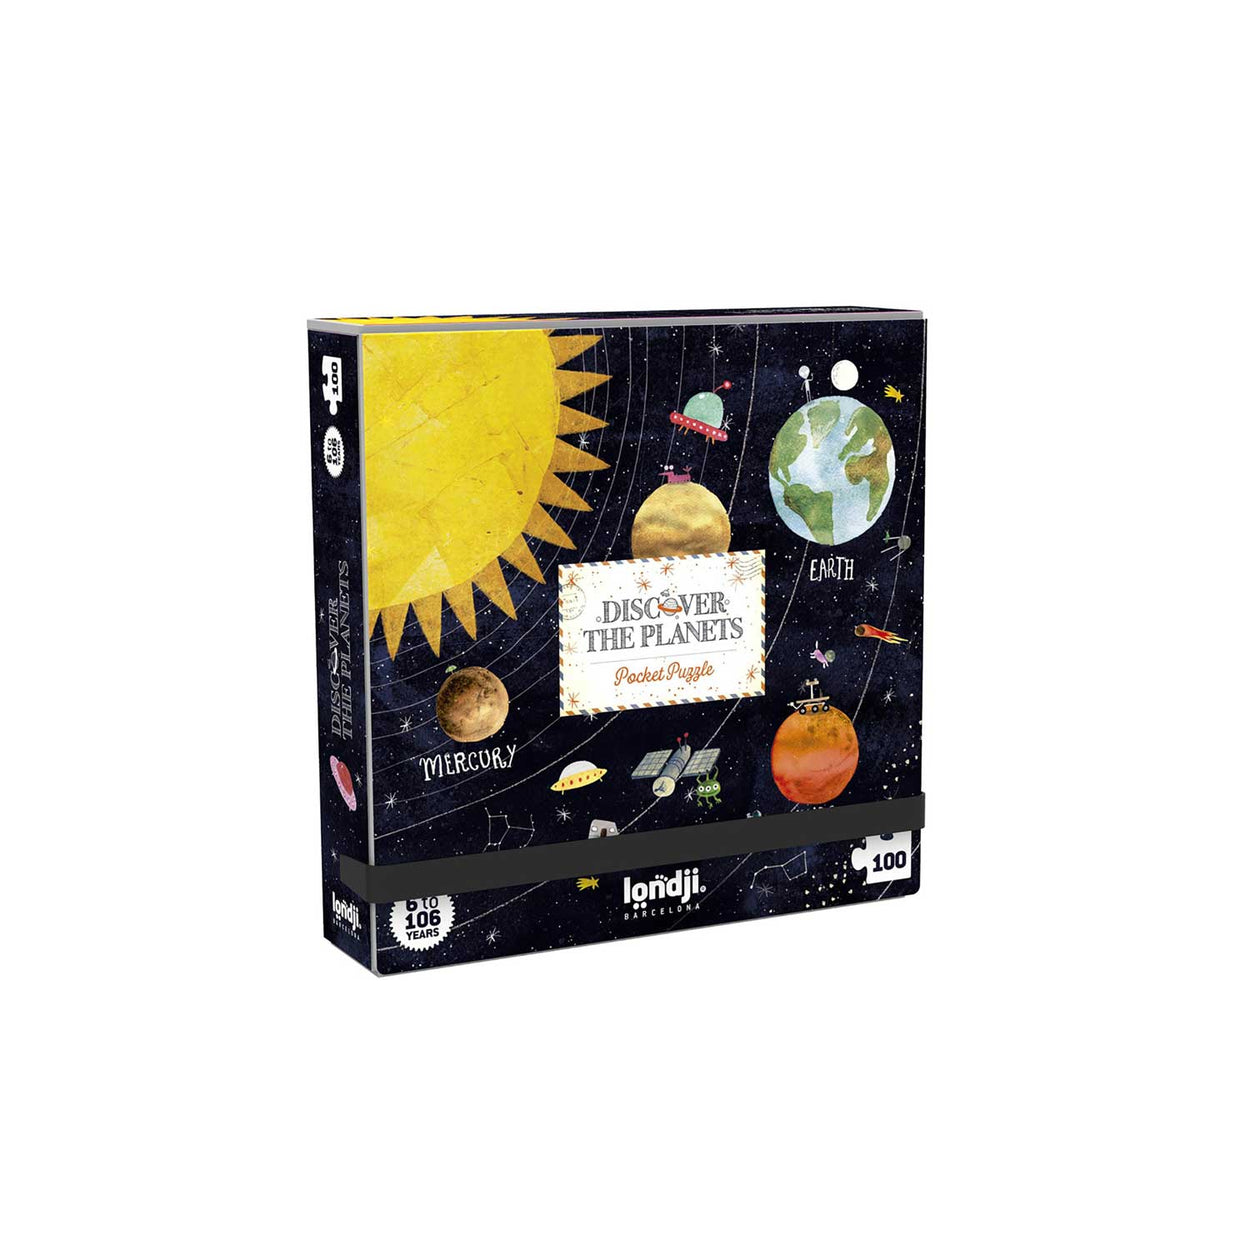 Discover the planets pocket puzzle by Londji